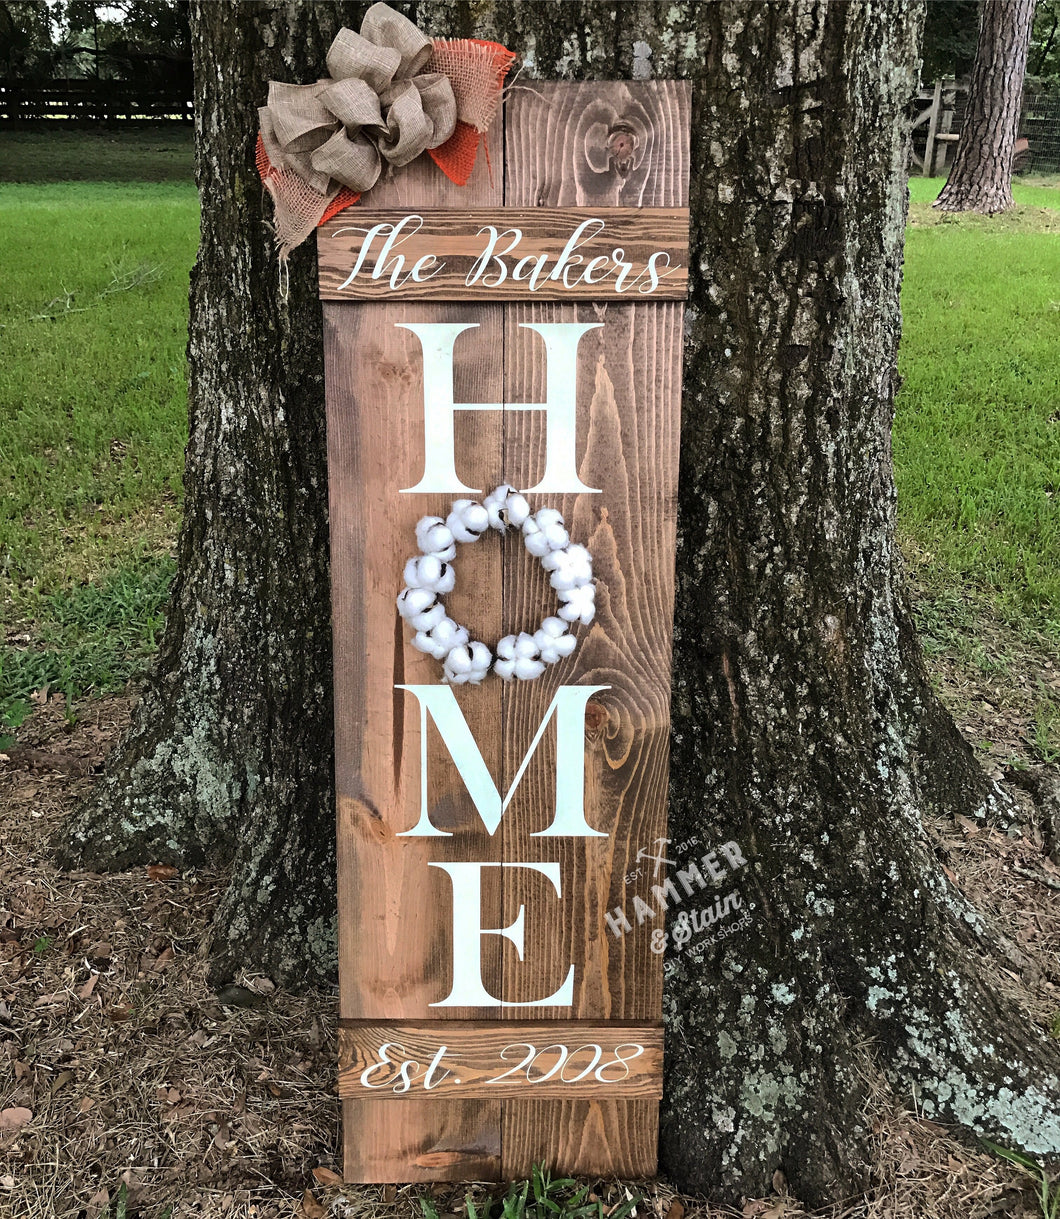 09/22/2017 (6pm) Rustic Shutter Home Workshop (Pooler, Georgia)